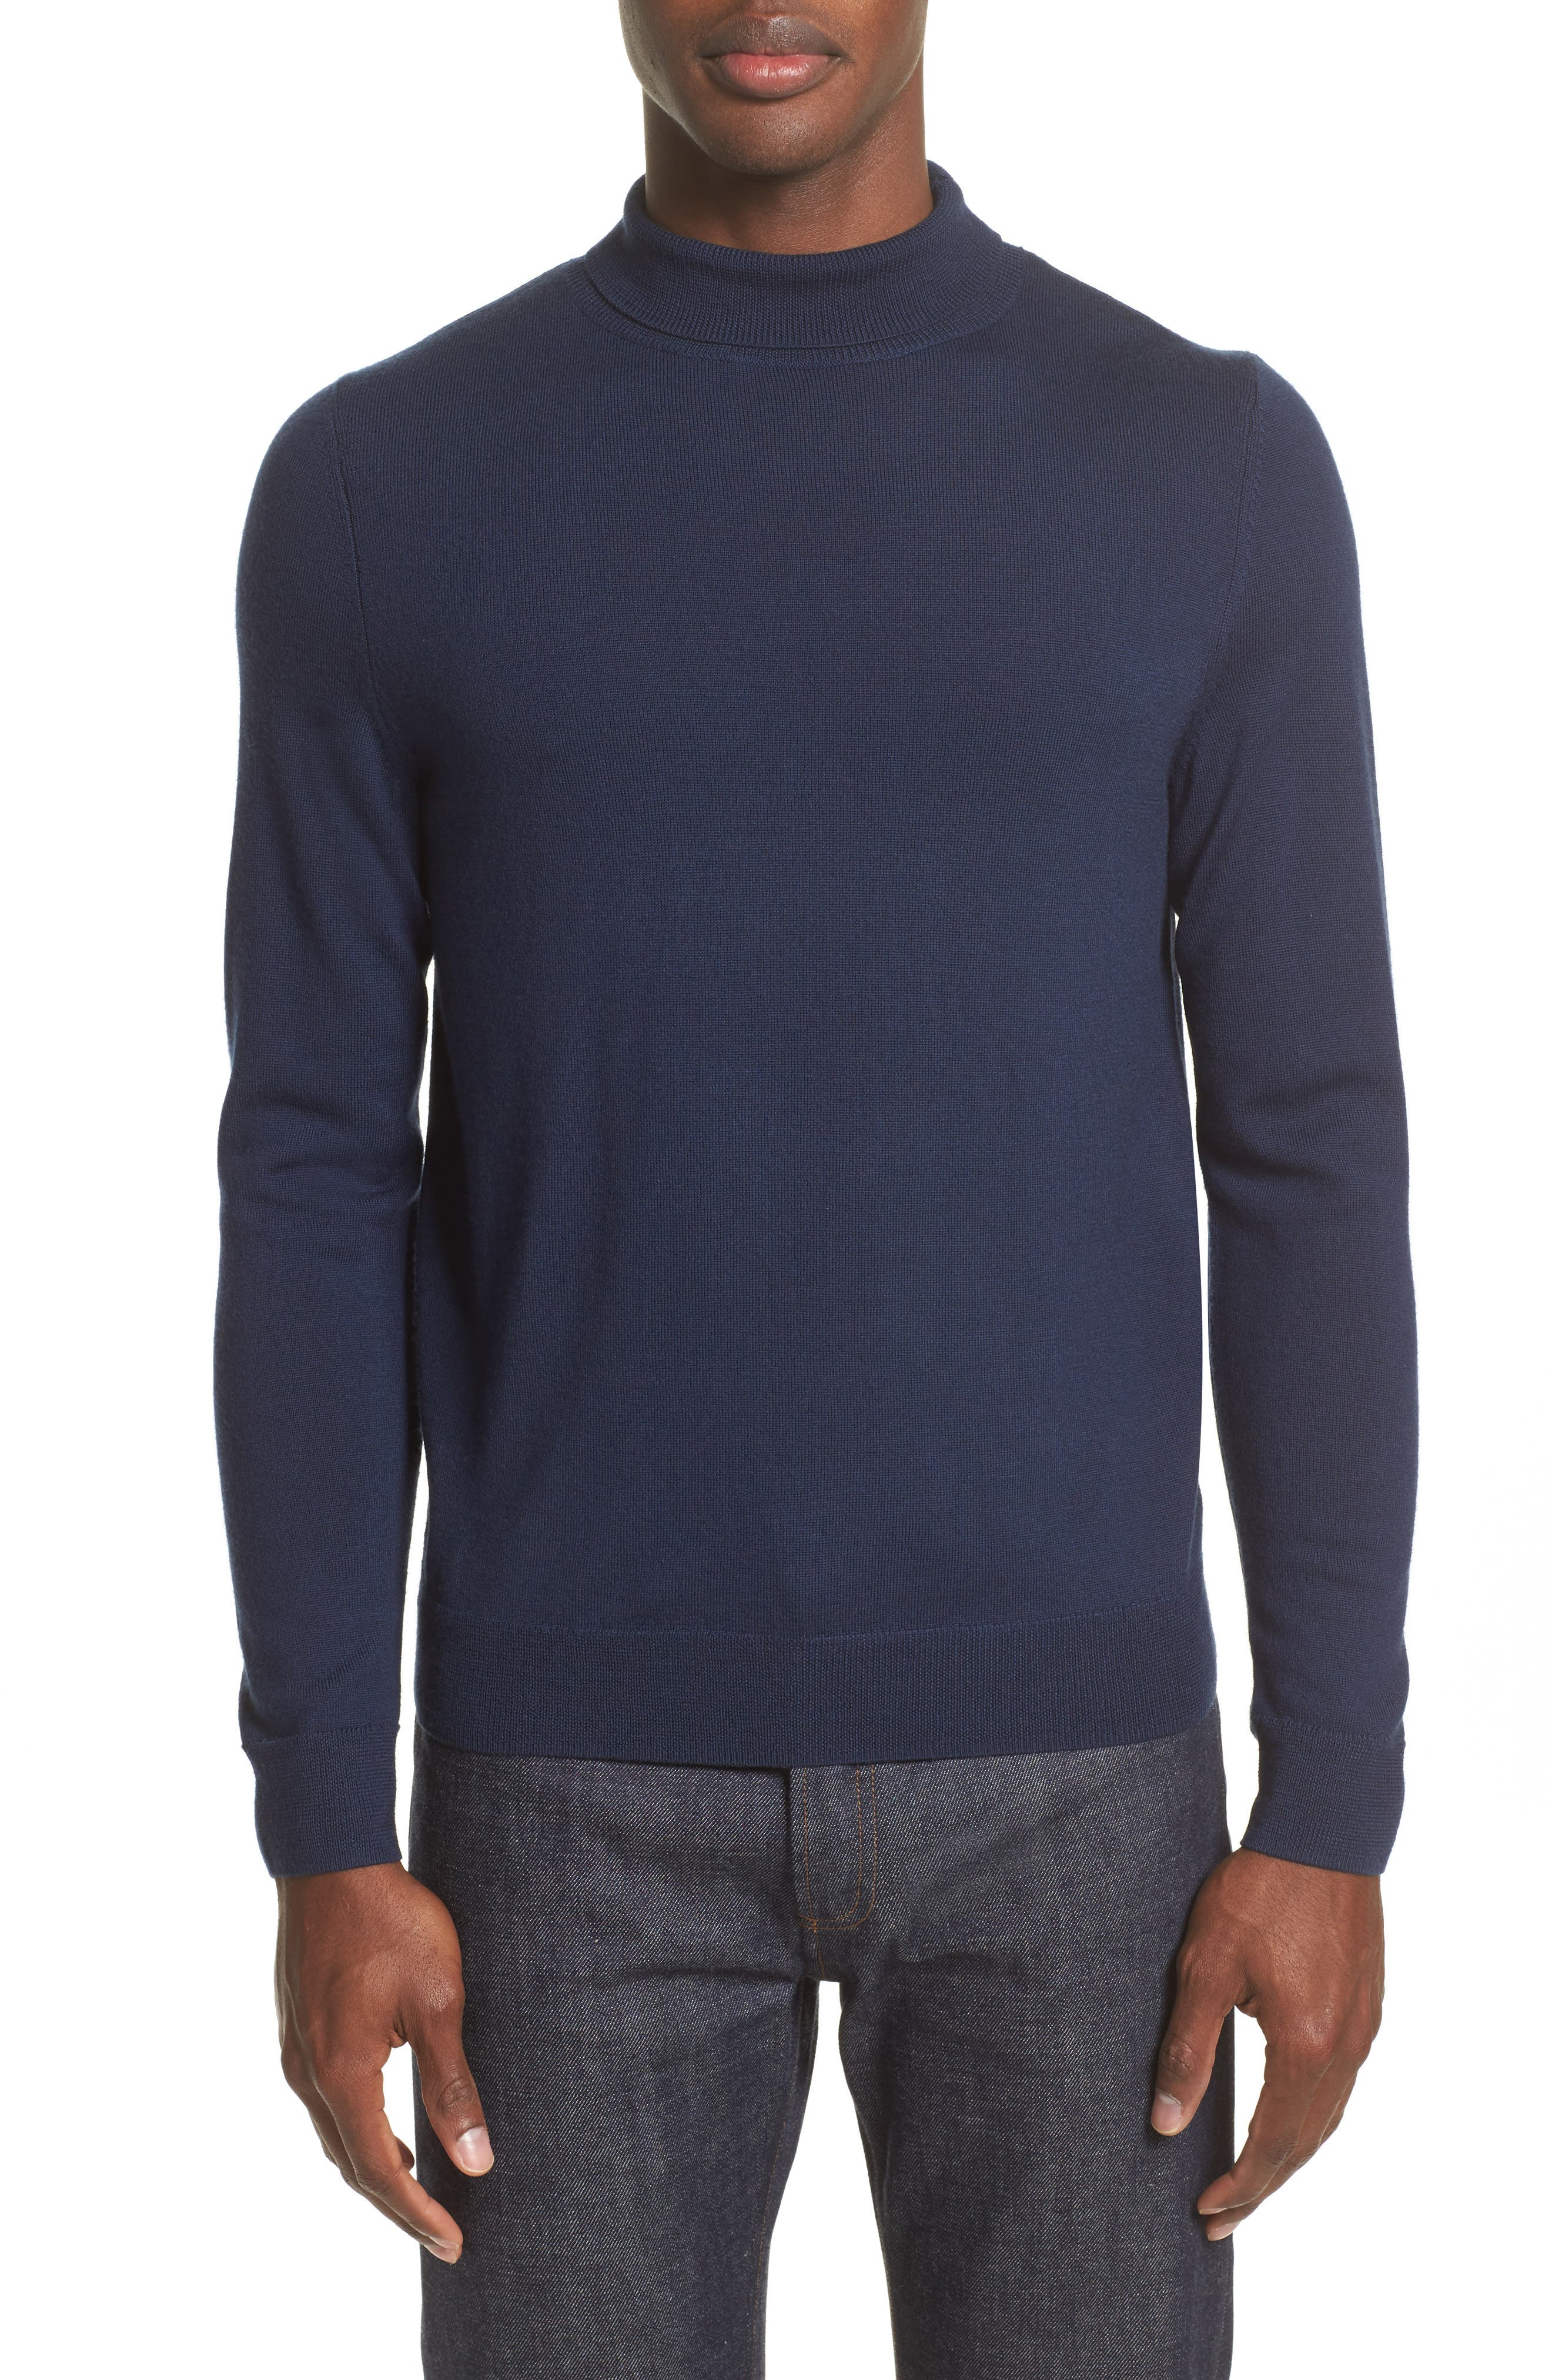 Alternate Image 1 Selected - A.P.C. Dundee Mock Neck Sweater